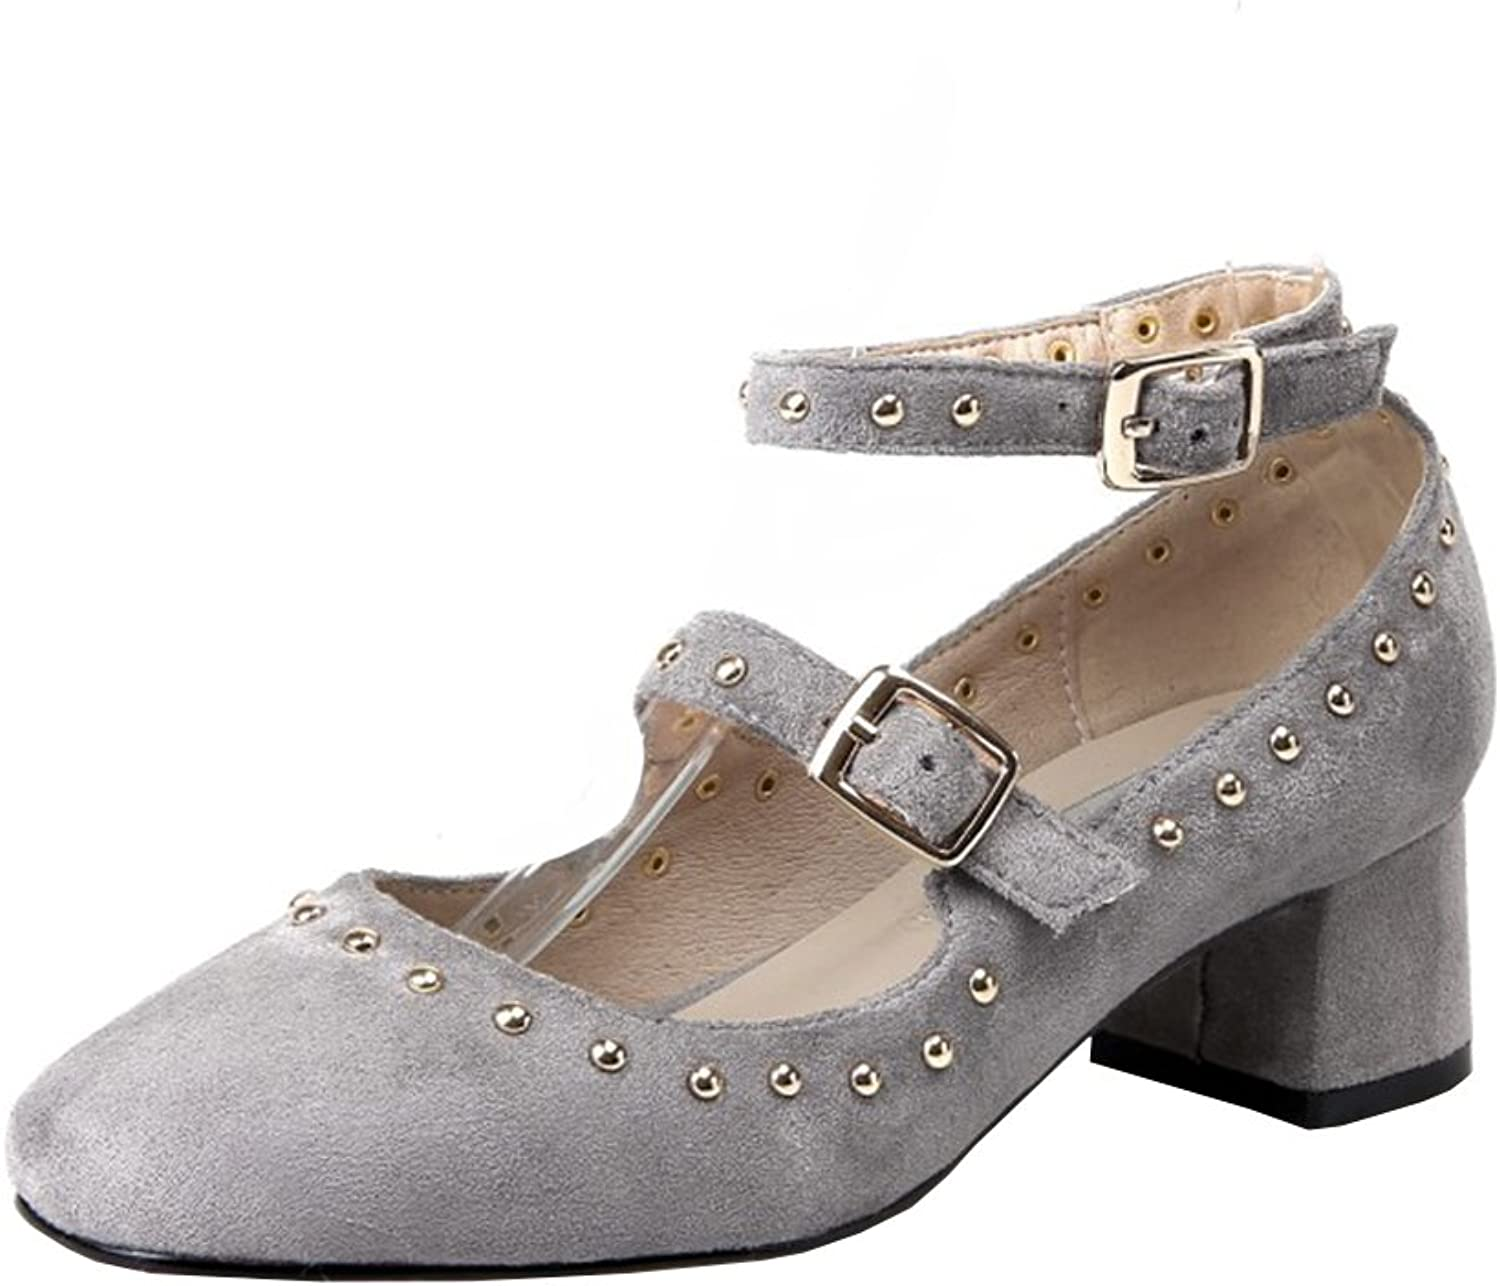 Agodor Womens Mid Block Heel Mary Janes Ankle Strap Pumps with Rivets Closed Toe Casual Retro shoes